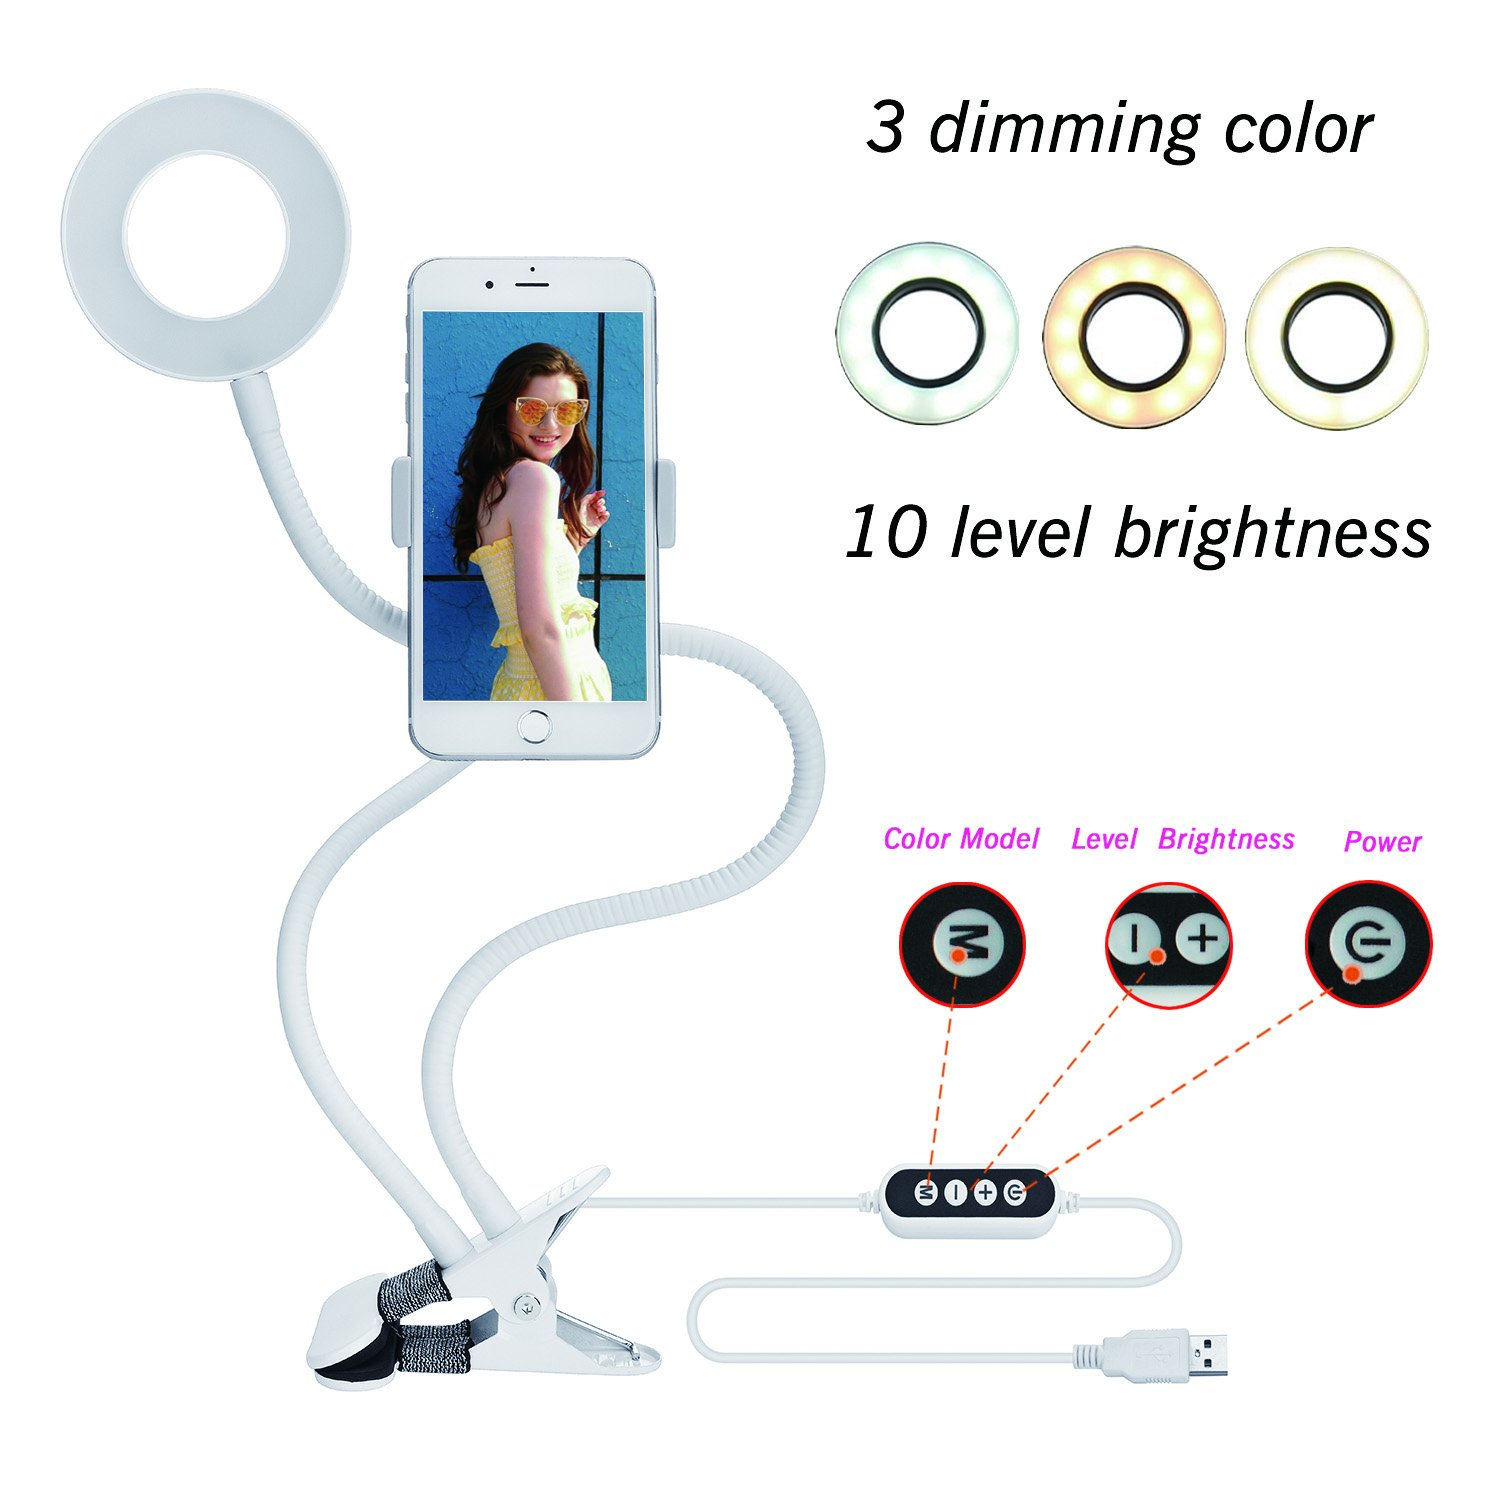 Velouer Selfie Ring Light (3 Color Light 10 brightness) with Clip Cell Phone Holder for Live Stream,Video Chat,360 Rotating Long Arms Lazy Bracket for iphone 7,6/plus,Samsung,HTC,LG,HUAWEI Etc White